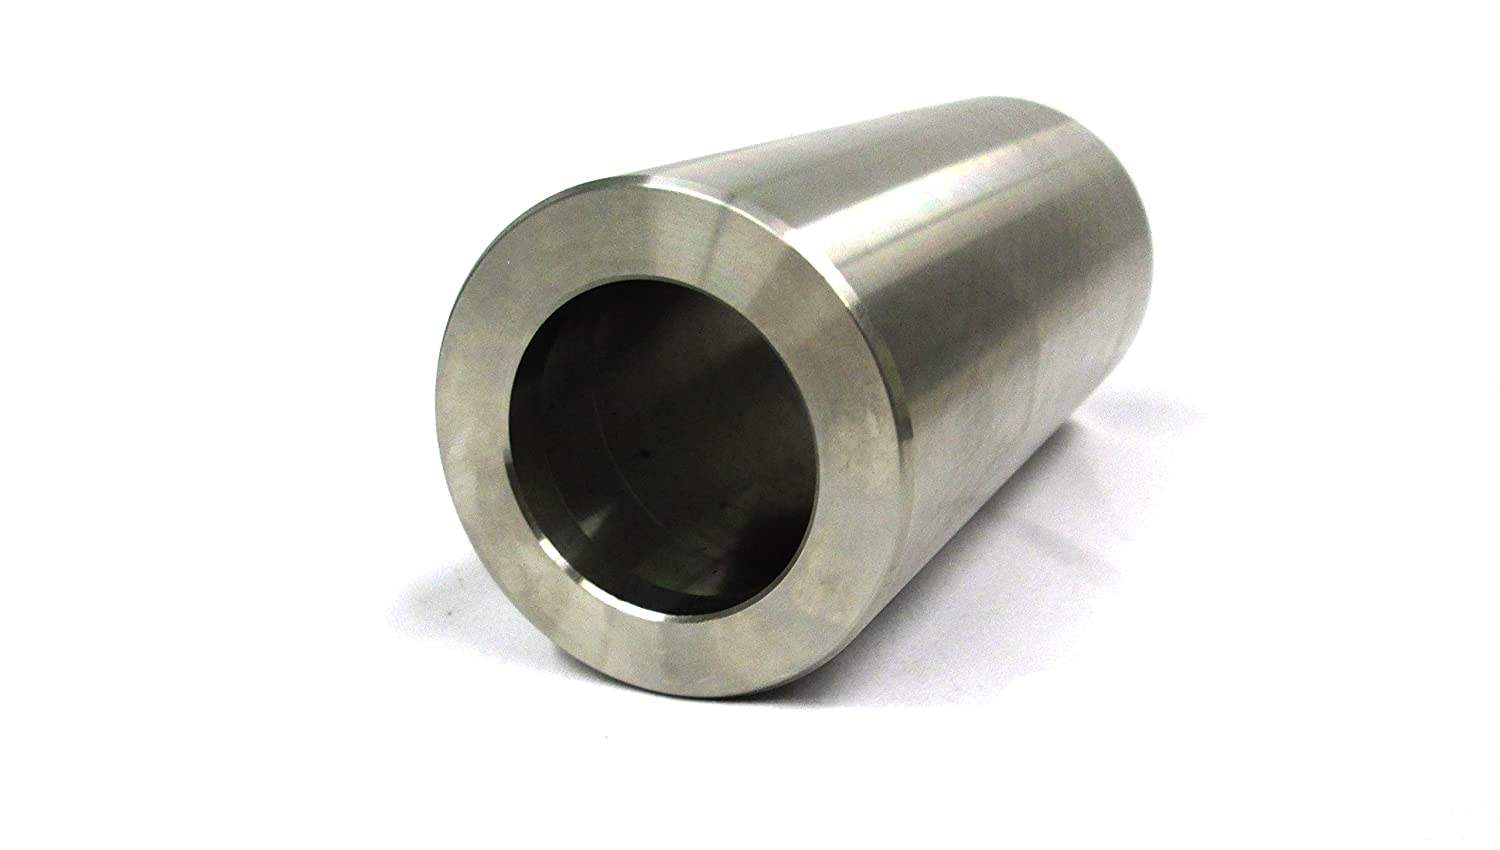 Shaft Sleeve to fit Goulds 3196 X17 ANSI Pump in 316SS for